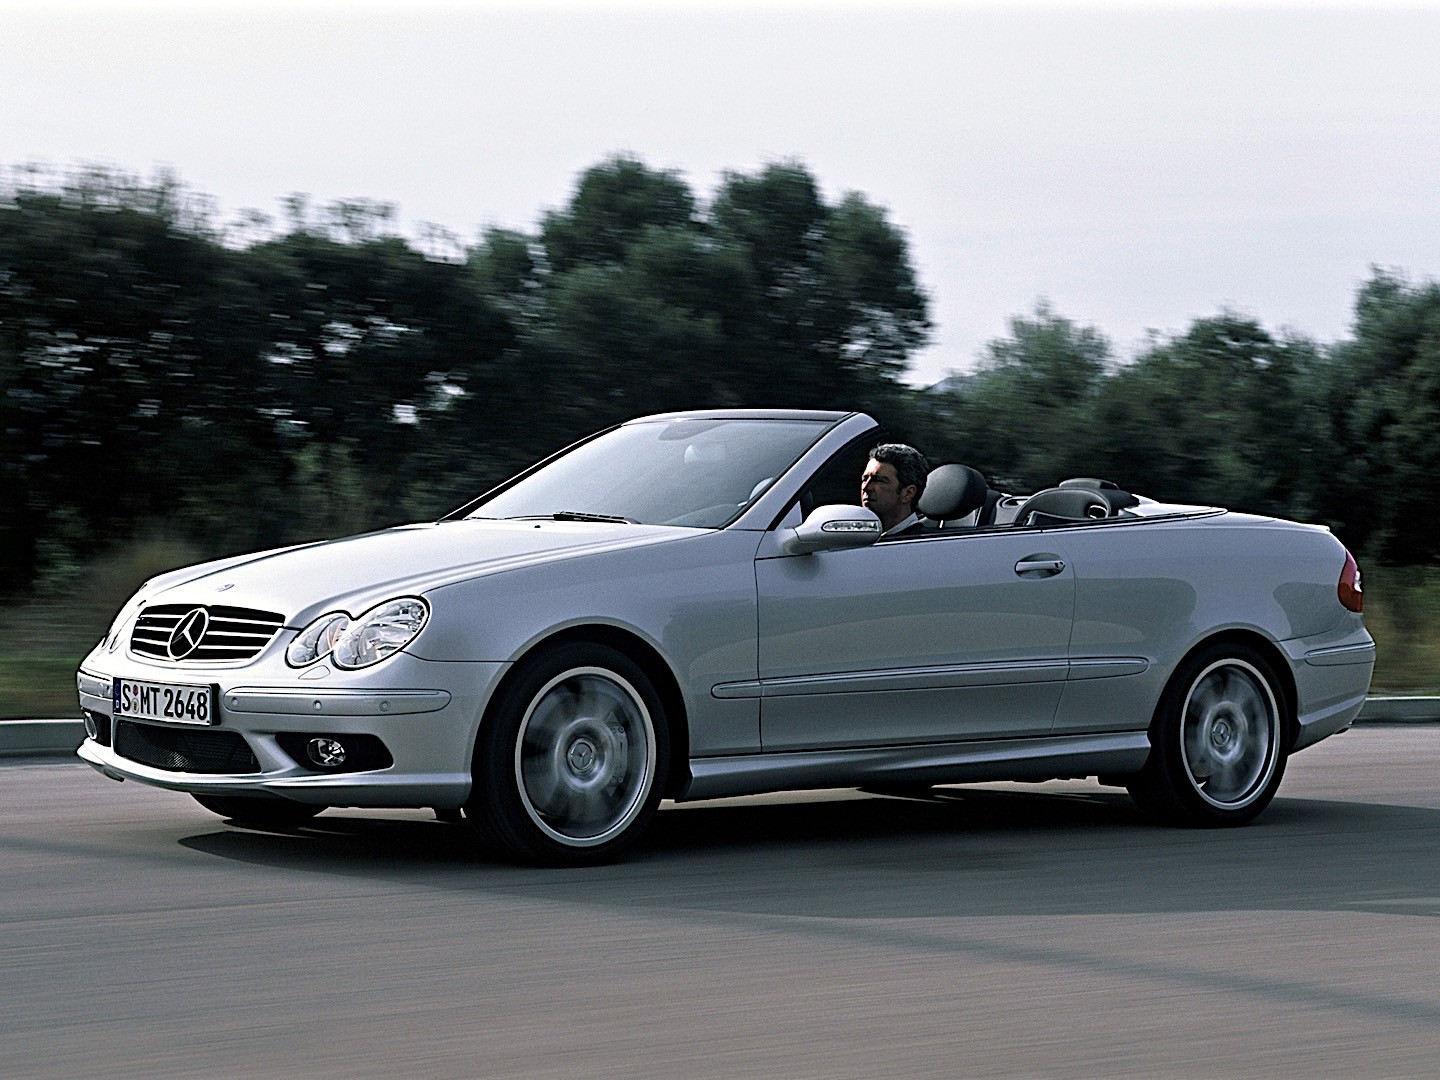 mercedes benz clk 55 amg cabrio a209 specs photos 2003 2004 2005 2006 autoevolution. Black Bedroom Furniture Sets. Home Design Ideas